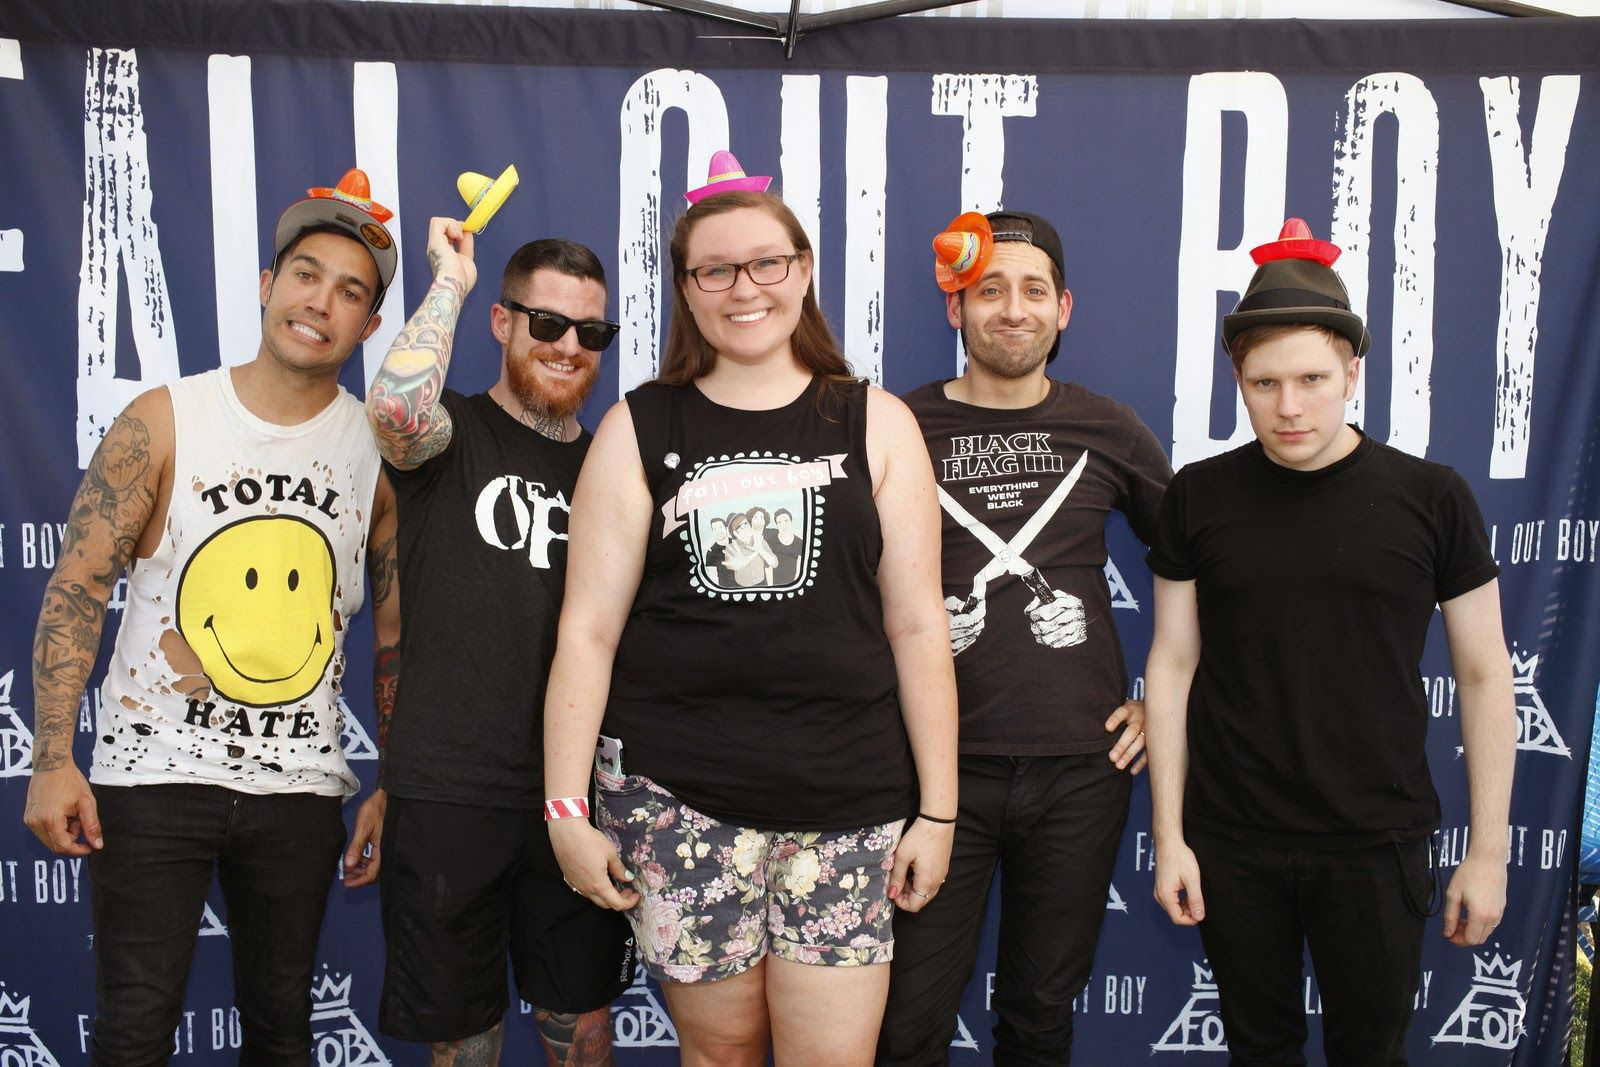 Fall Out Boy Meet And Greet Photos Google Search Fall Out Boy